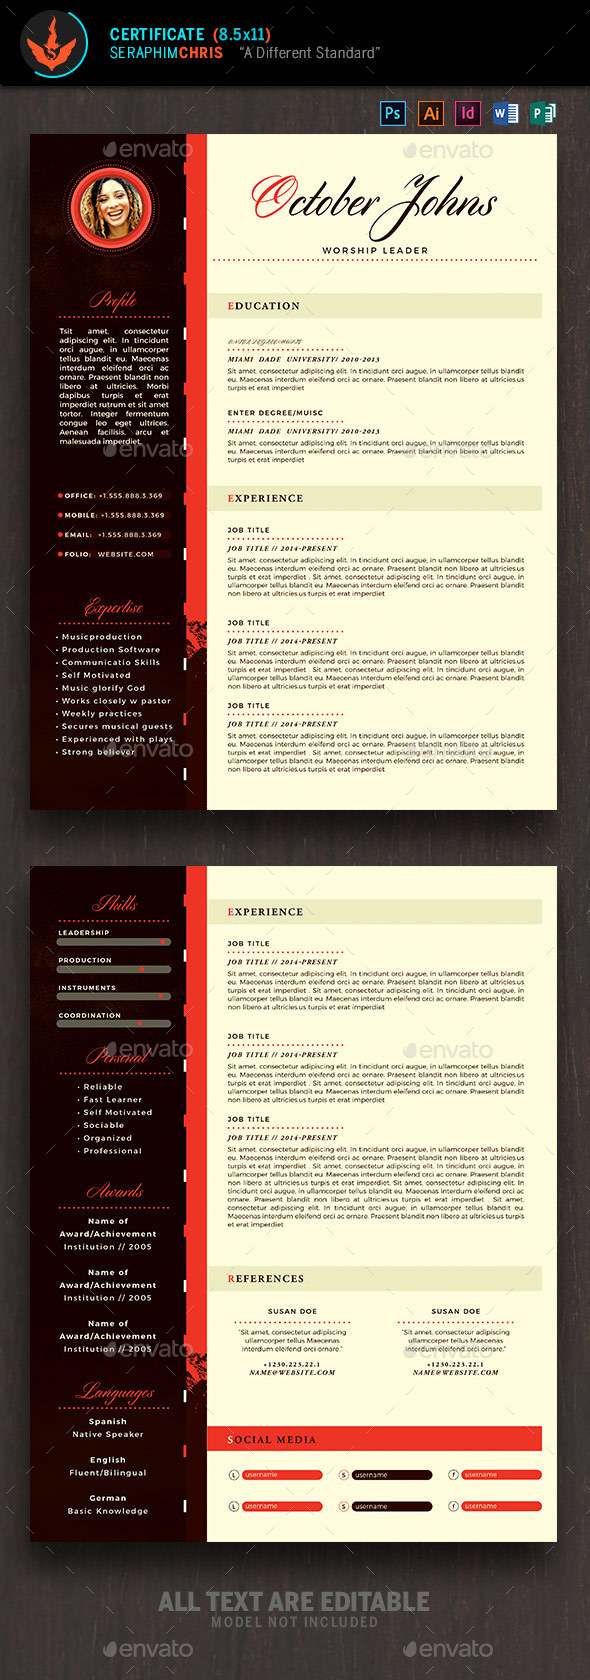 king modern church resume template resumes stationery - Envato Resume Templates